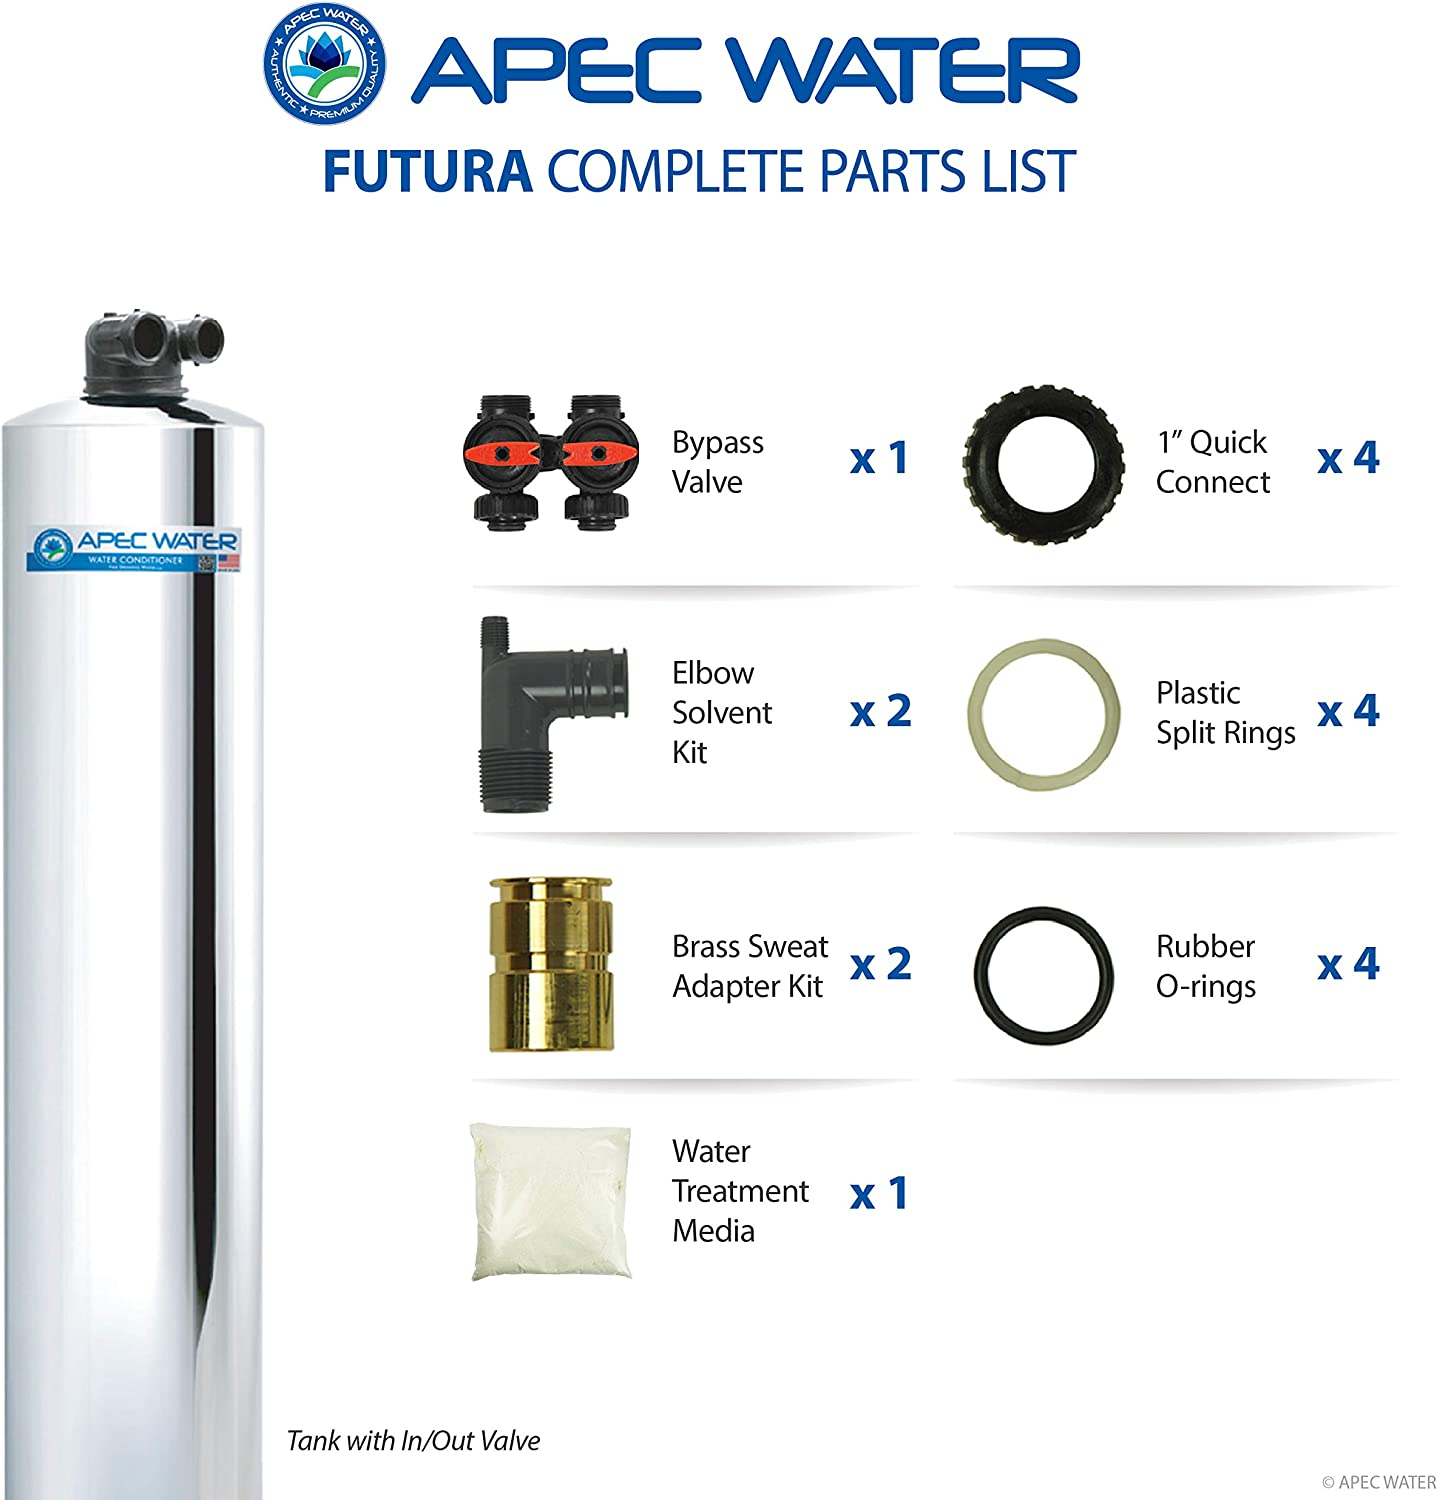 APEC Water FUTURA-10 Water Conditioner Reviews